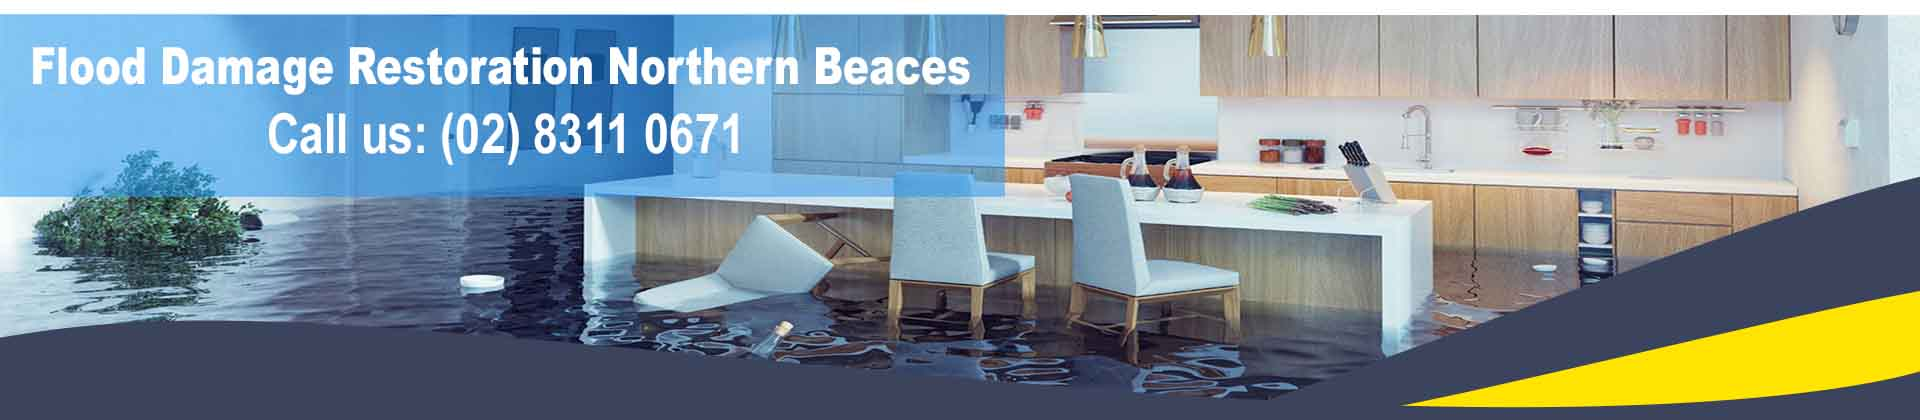 Flood Damage Restoration Northern Beaches